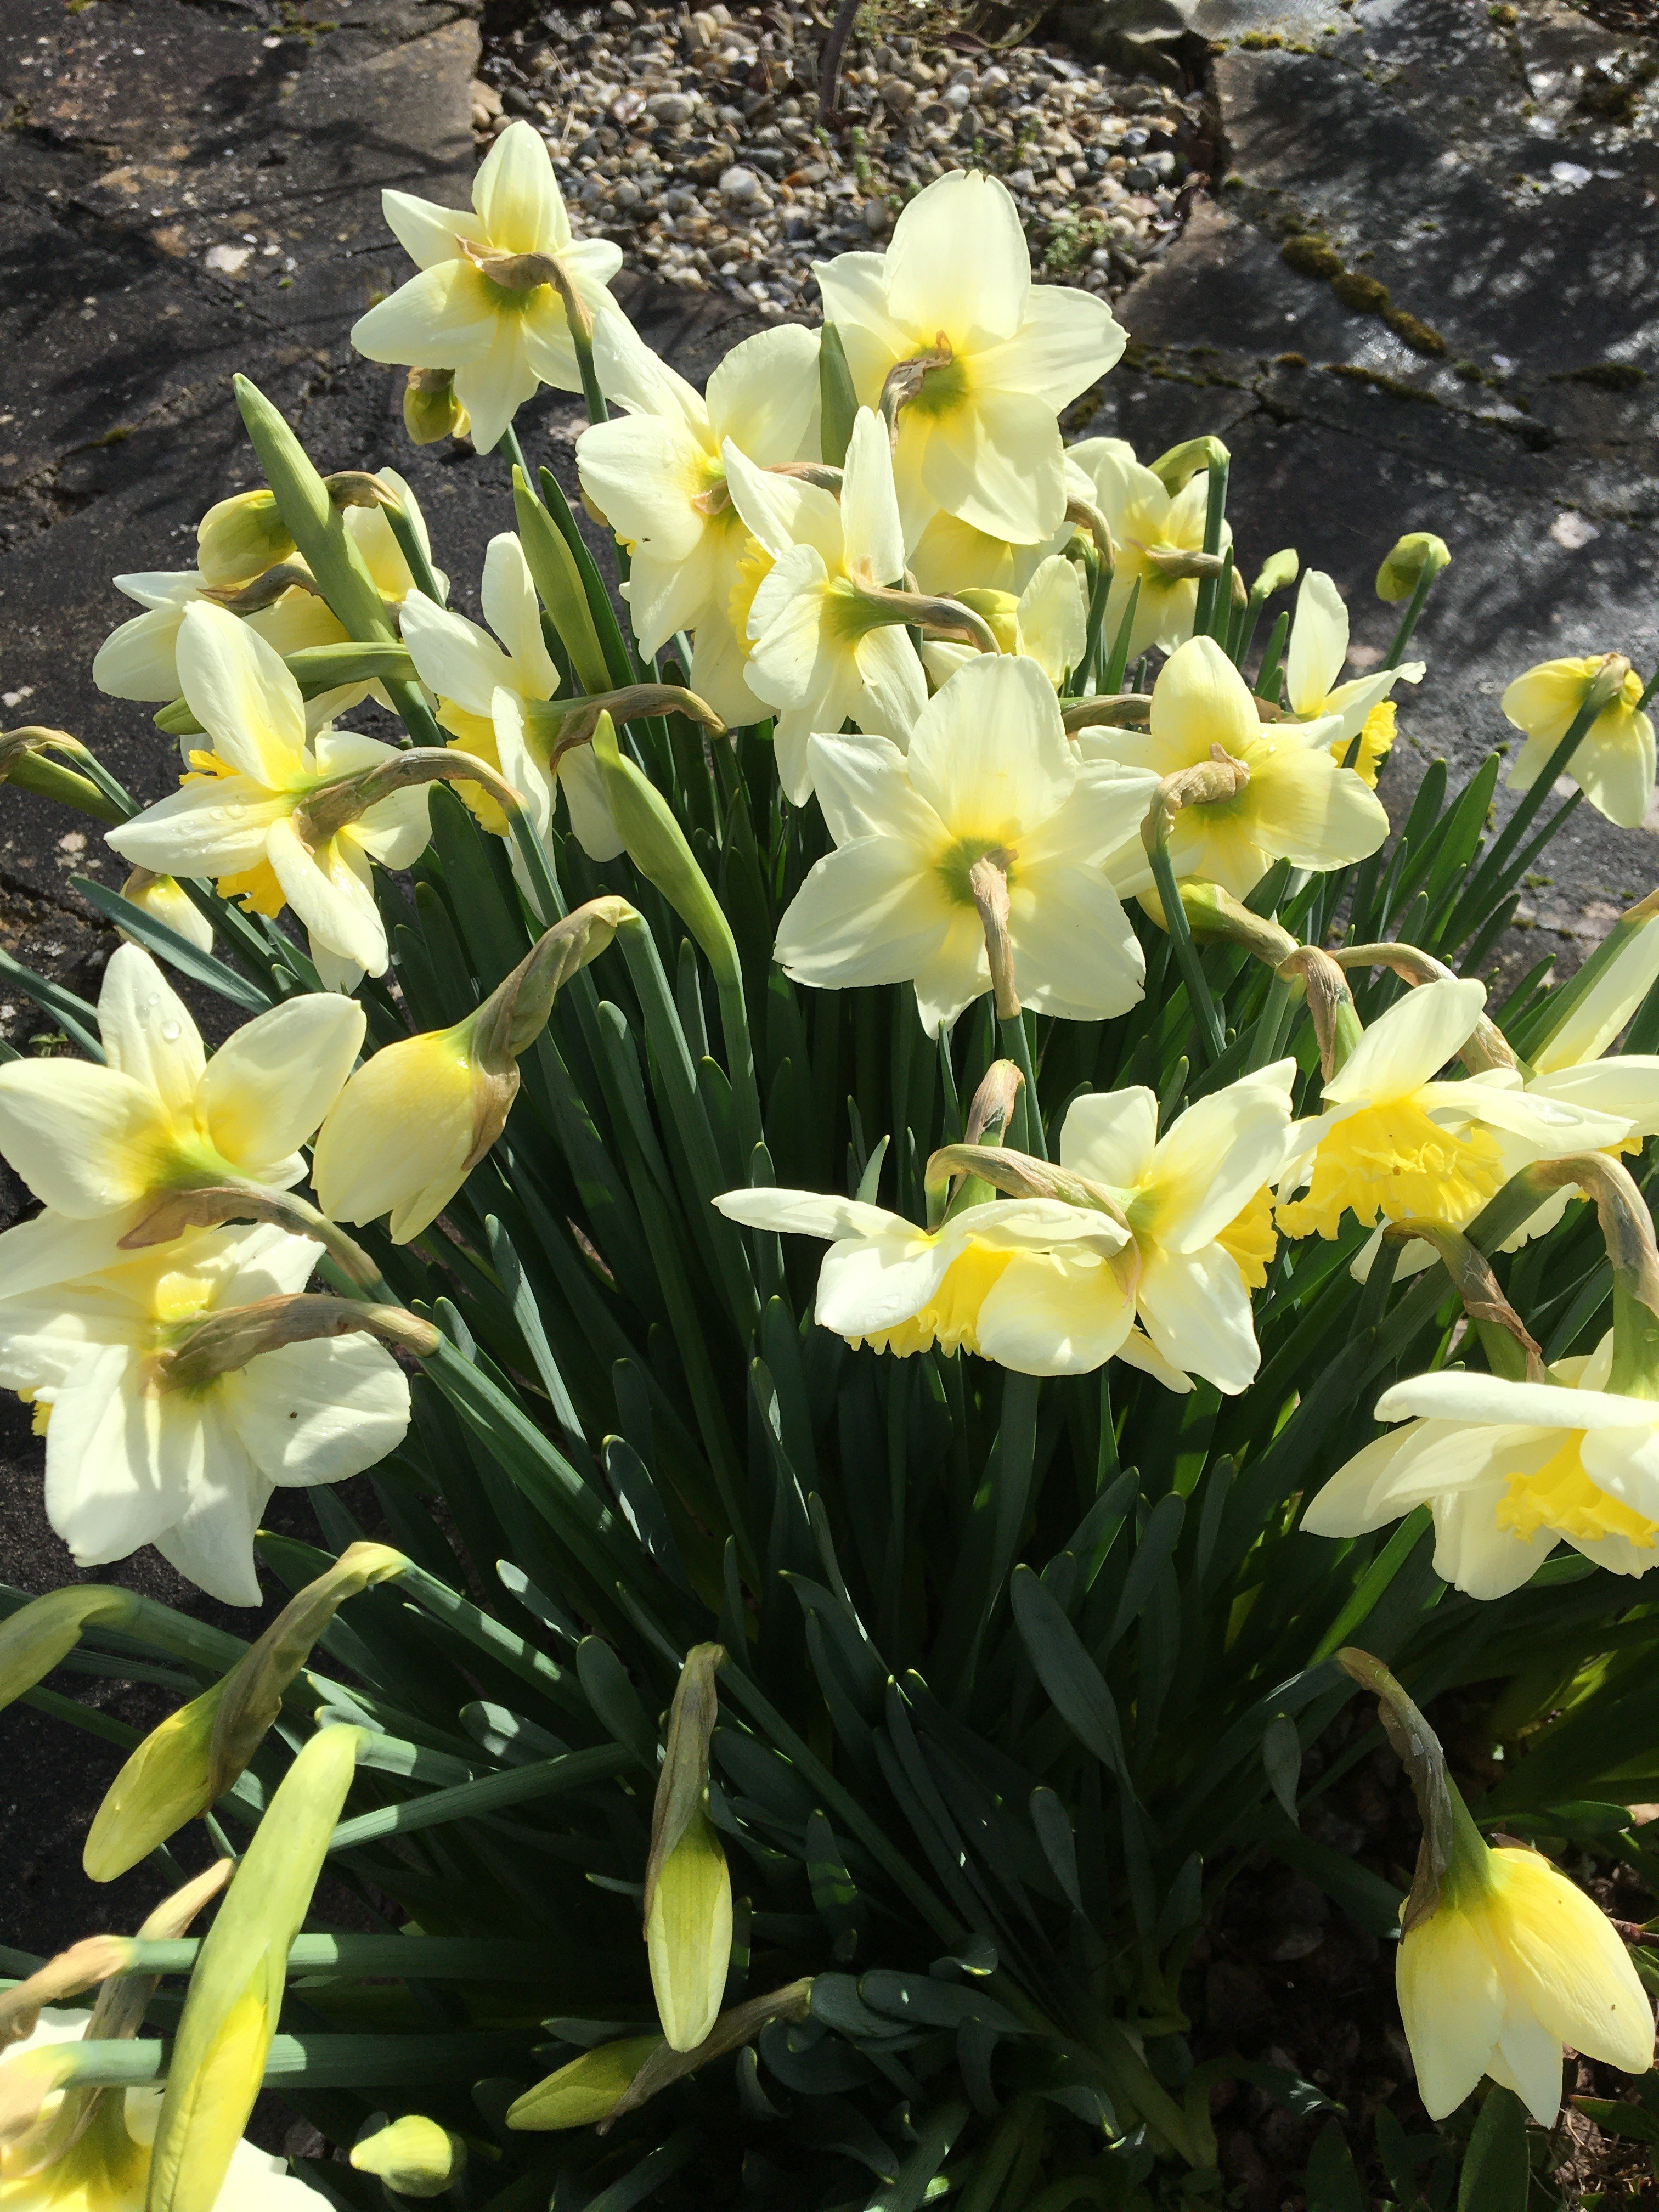 How to plant spring flower bulbs. Lemon yellow daffodil. How to Plant Spring Flower Bulbs